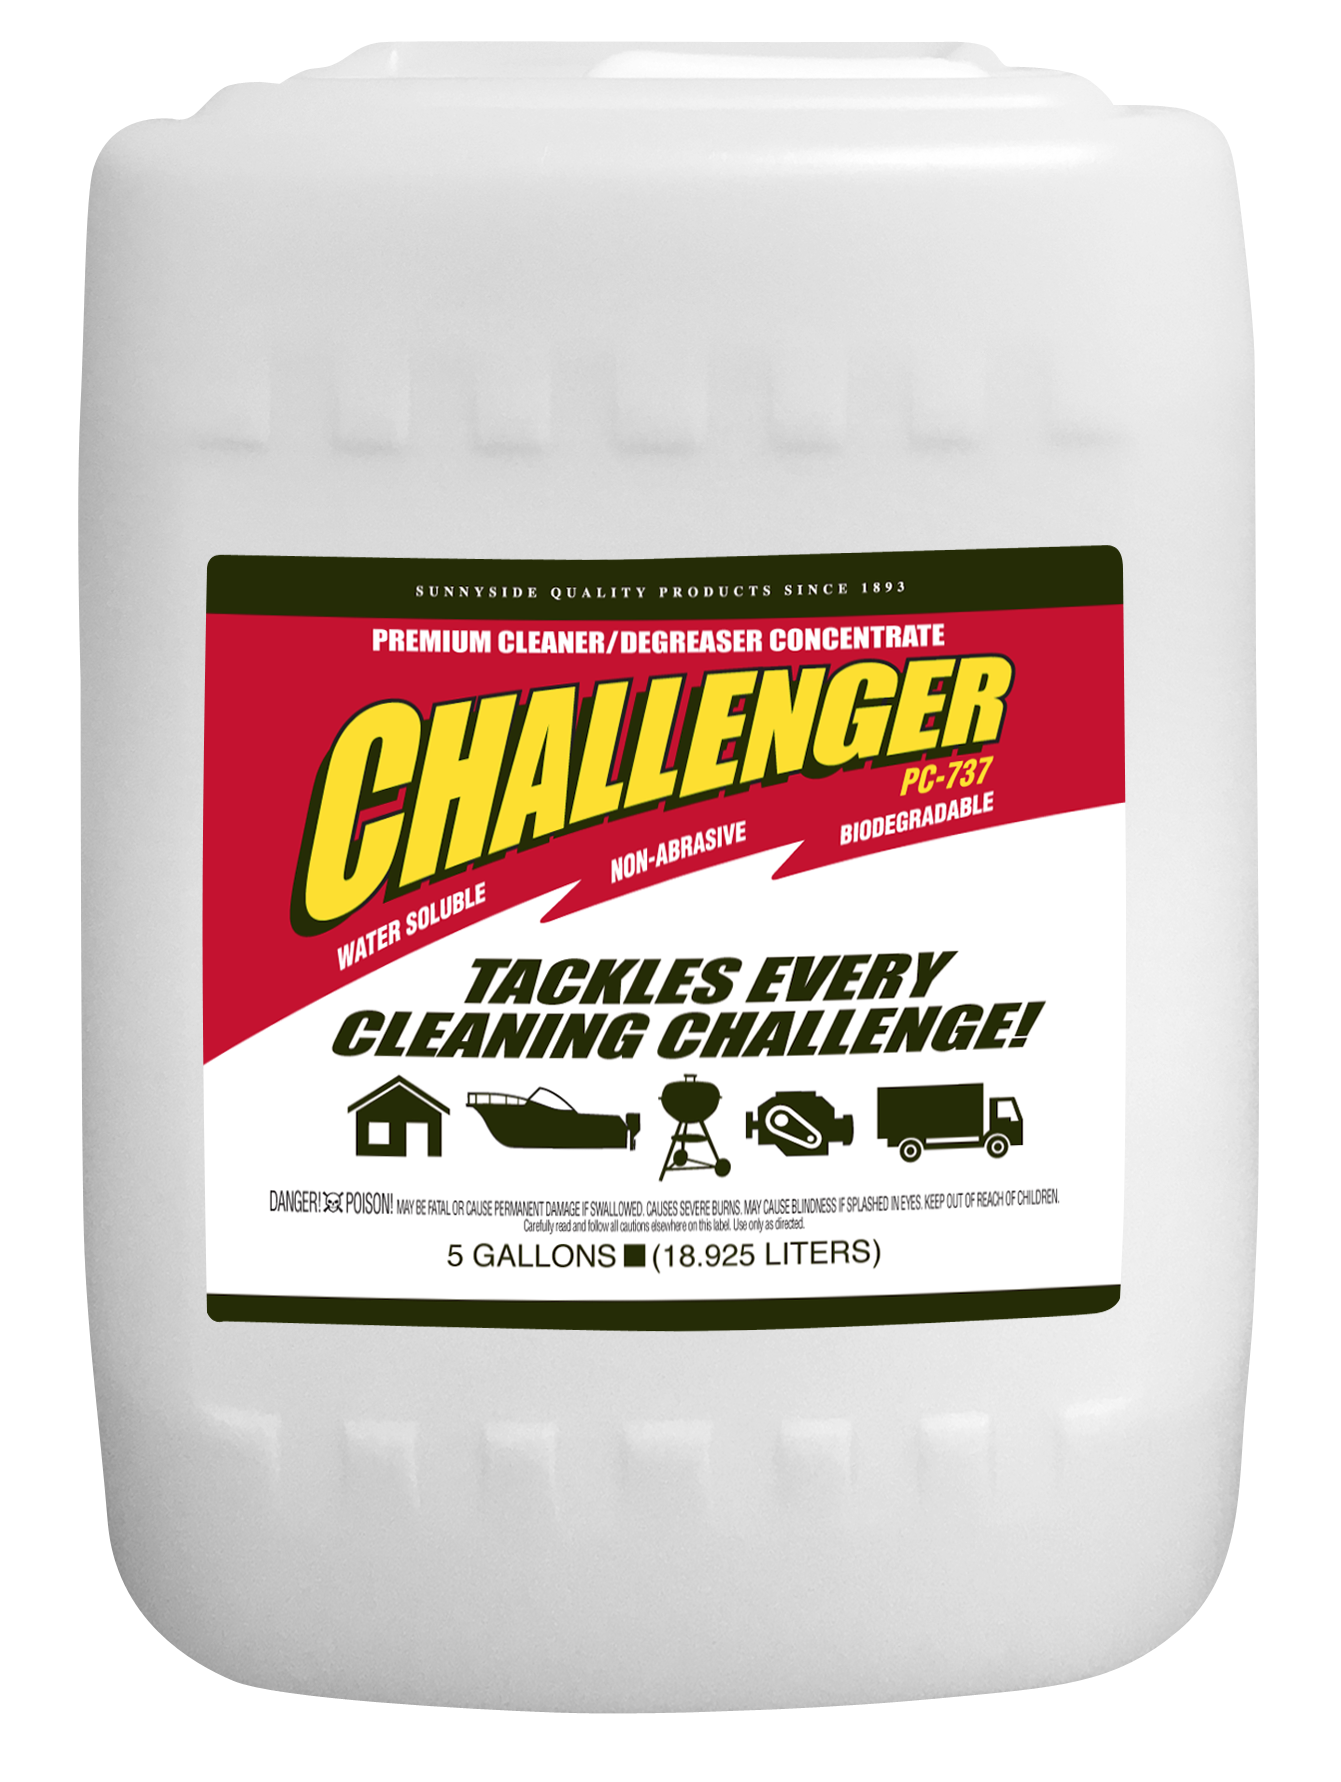 CHALLENGER CONC. DEGREASER Product Image